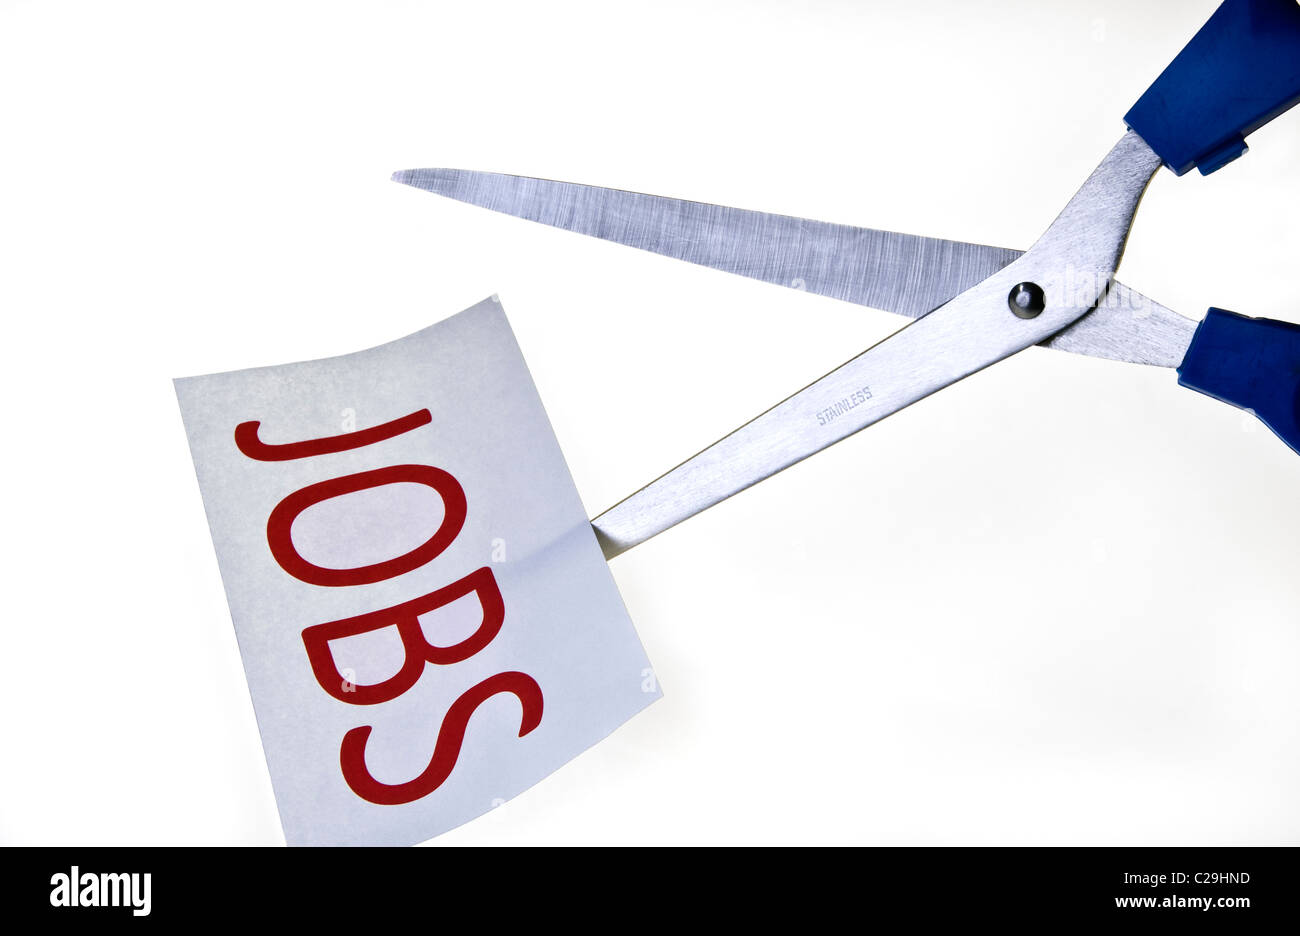 Job Cuts. Scissors cutting paper. - Stock Image